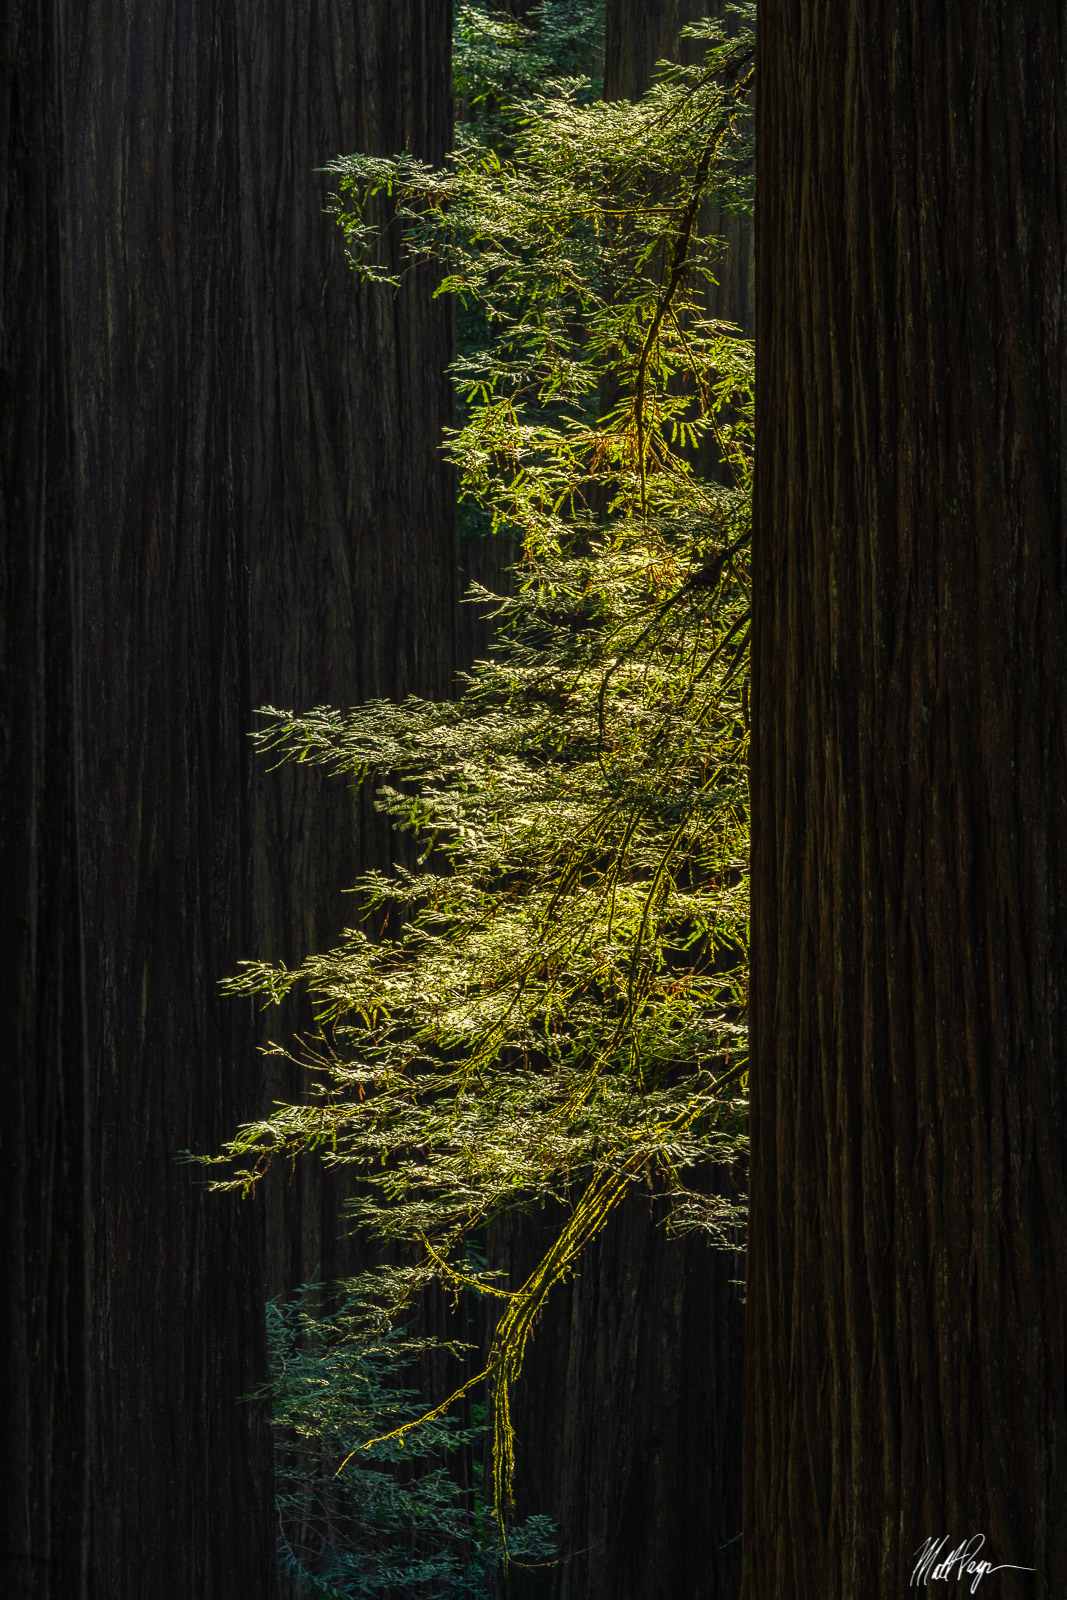 Discovering smaller scenes like this one in the chaotic and unruly Redwoods forests of California are a real treat for a nature...